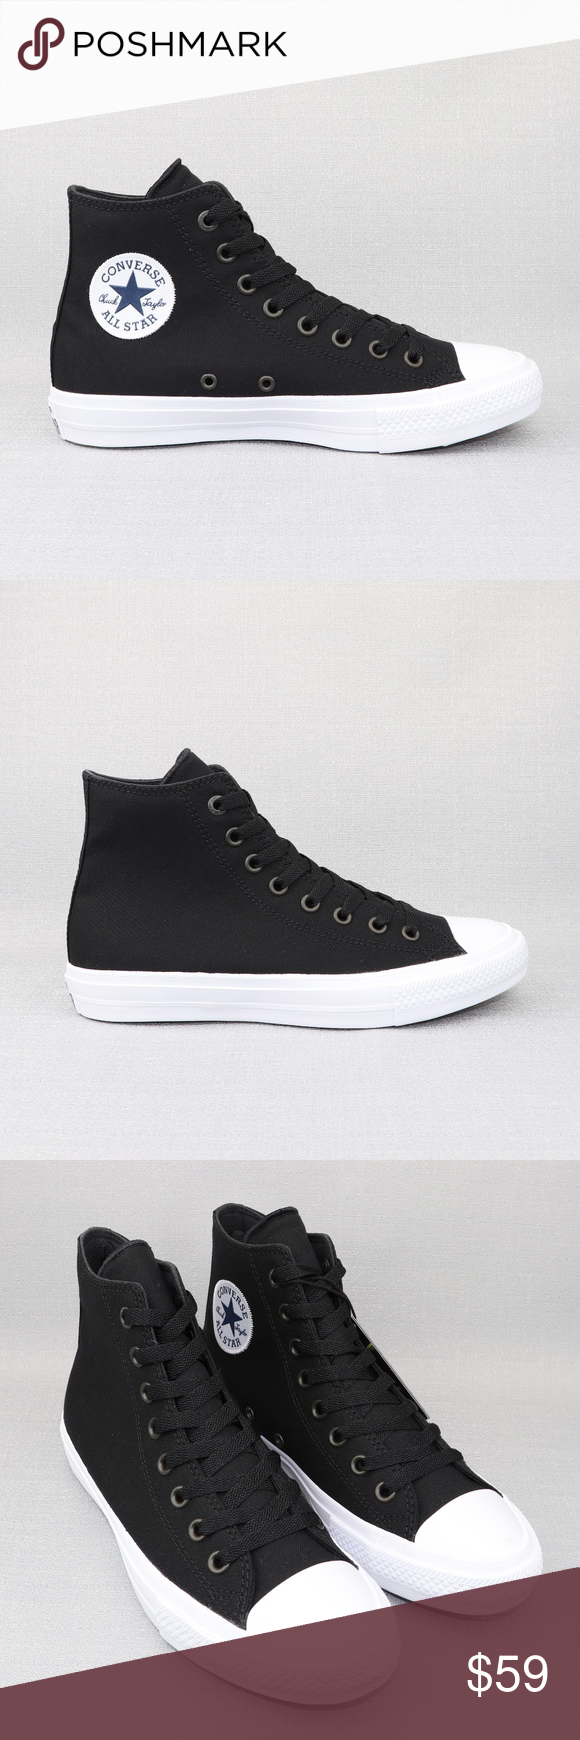 ee454954fff6 Converse Chuck Taylor All Star 2 High Black White Condition   New Without  Box Comes with additional white laces. If you have any questions